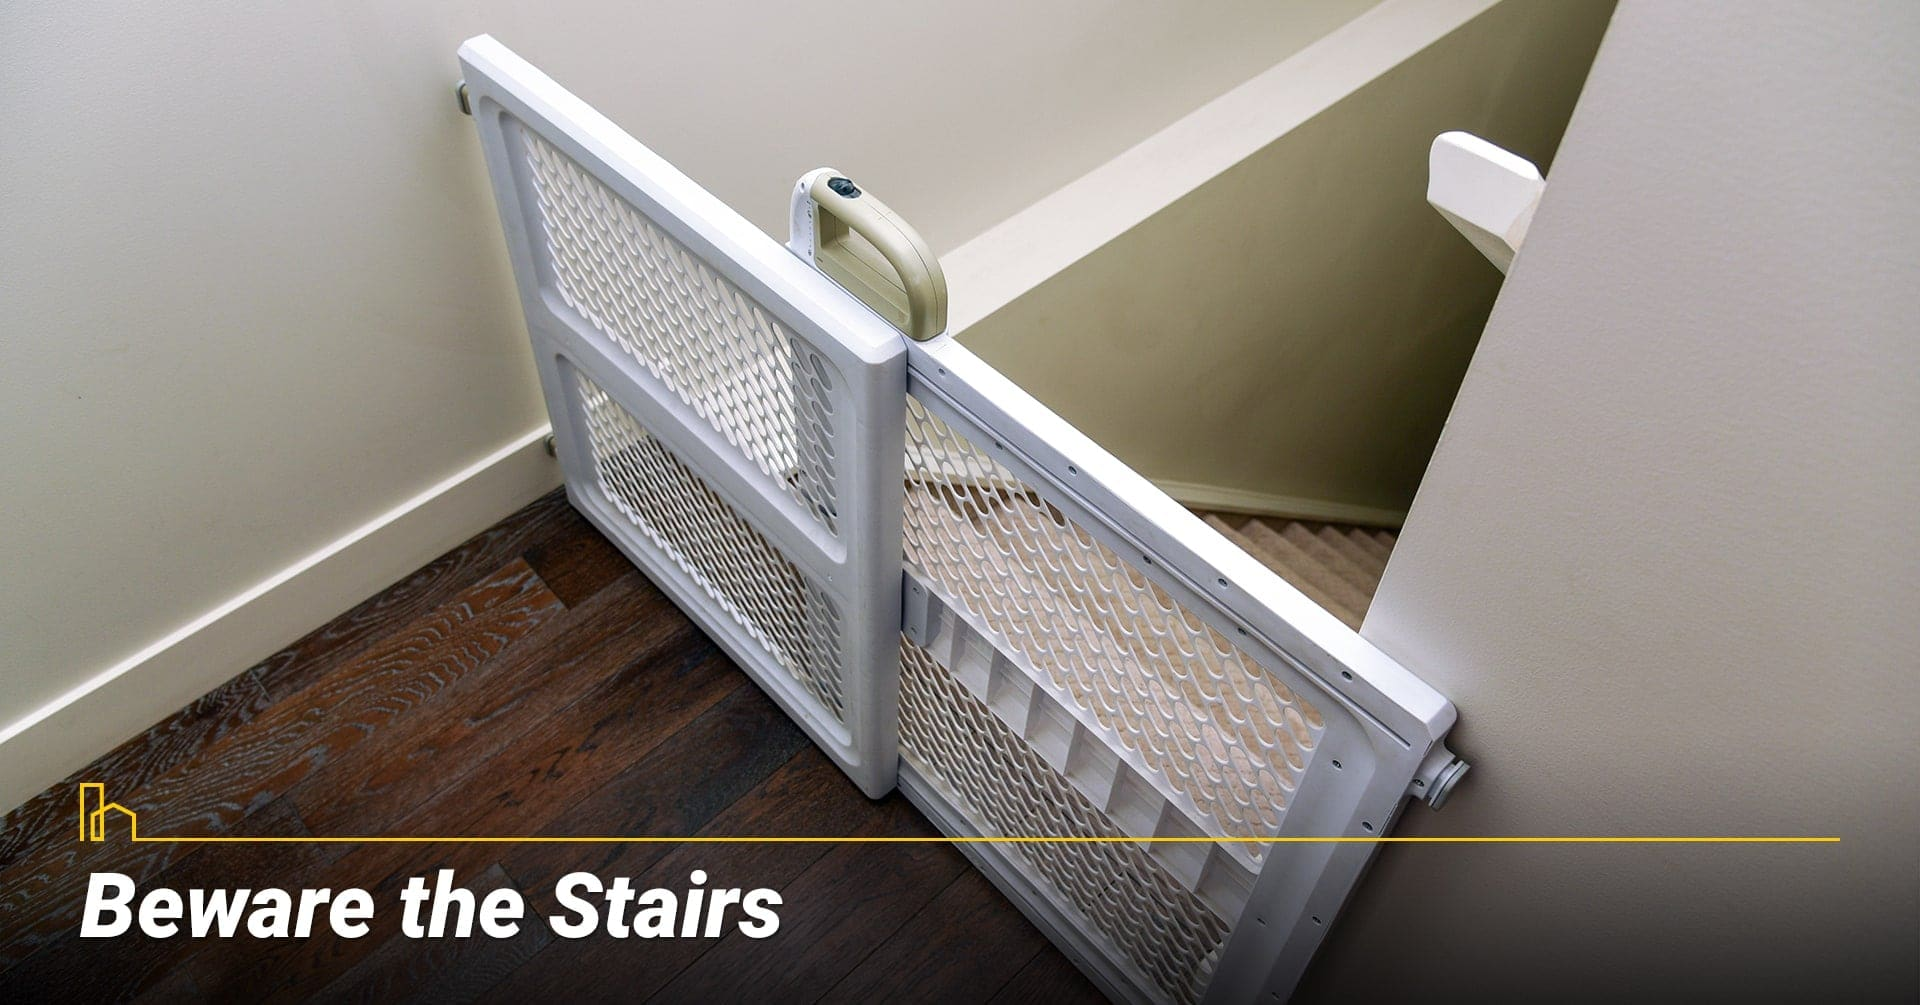 Beware the Stairs, secure your stairs